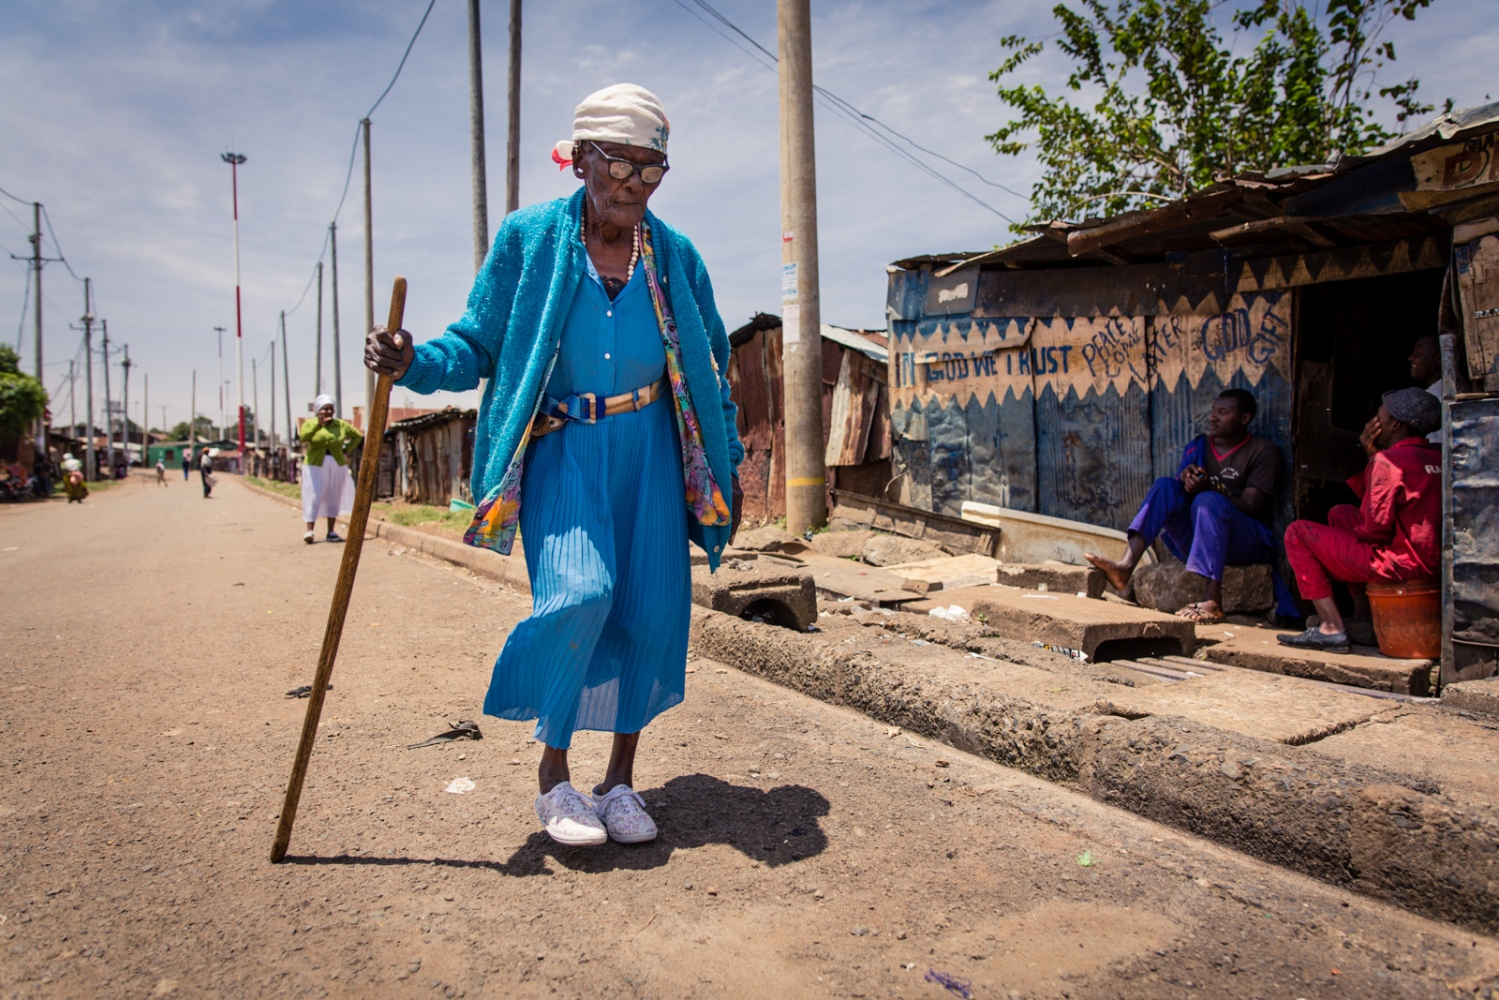 Nairobi, KENYA, February 21, 2017: Helen Wairimu, 106, walks home after a 'Shosho Jikinge' class. In 2016, when she was 105 years old, a heavy-set, young man came to Helen's hut and raped her. Helen still participates in the class every week, eager to encourage the other women to train harder through her role as a survivor.